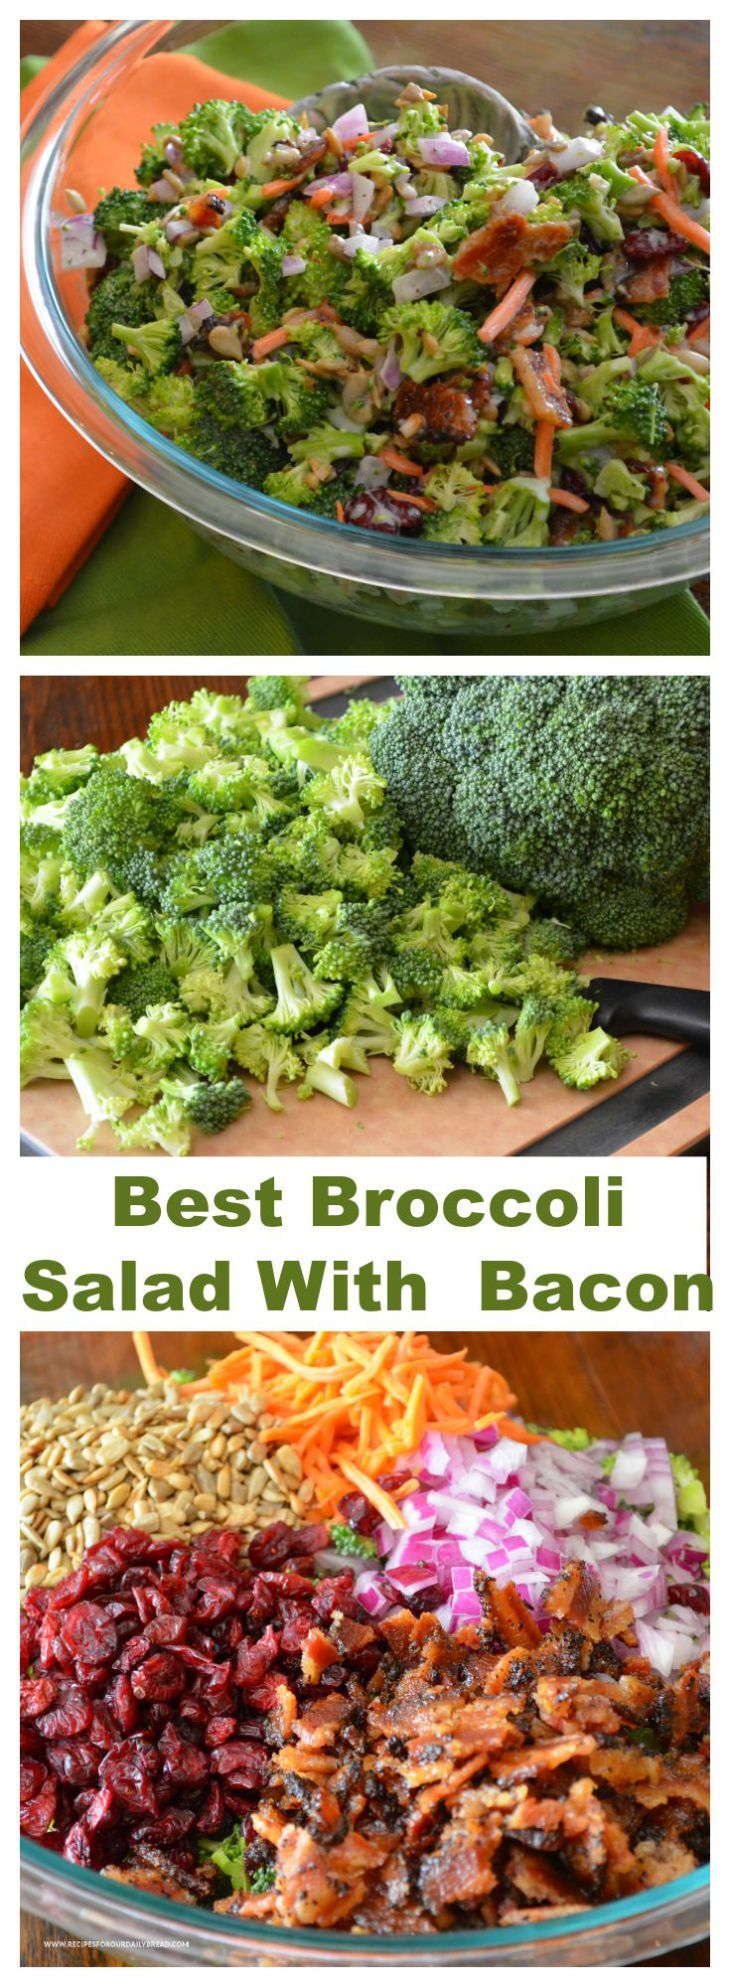 How to Make Awesome Colorful Broccoli Salad With Bacon? - I have tried many Broccoli Salad with bacon recipes over the past 20 years, but this combination is my favorite.   SEE FULL RECIPE HERE: http://recipesforourdailybread.com/best-broccoli-bacon-salad-recipe/